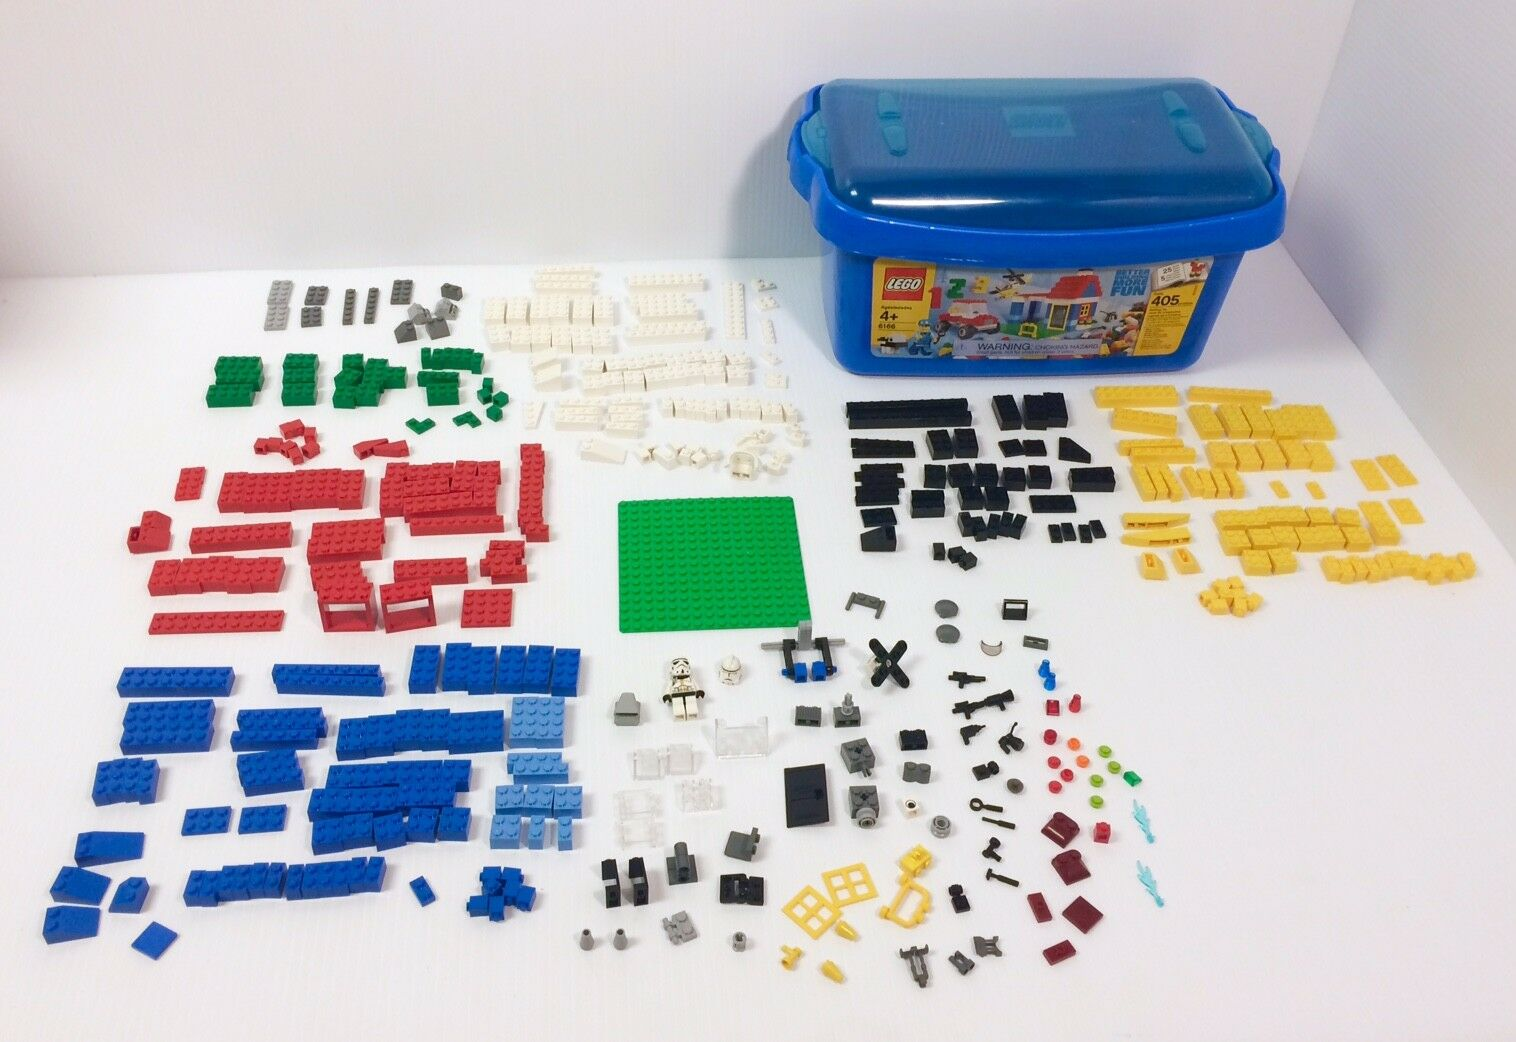 Legos with Tub Over 400 400 400 Pieces Mini figure Tools Weapons Included Good Condition dcd81d